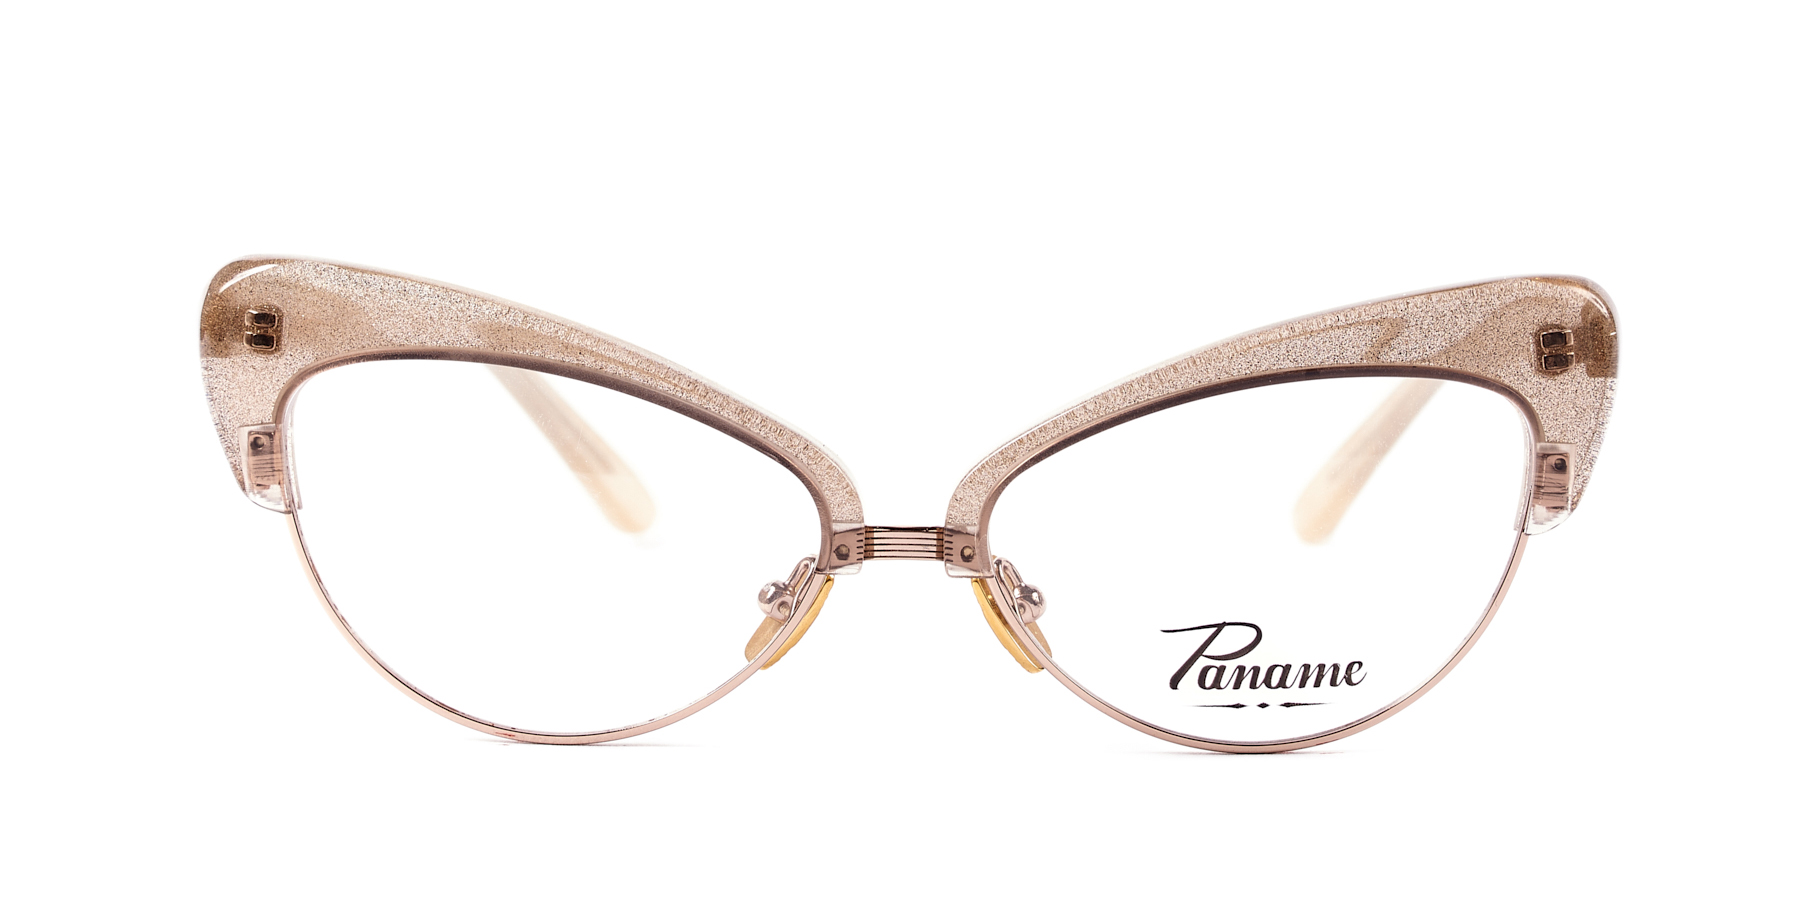 8af12c0fd6adc8 PANAME - CULT VISION - CURATED EYEWEAR